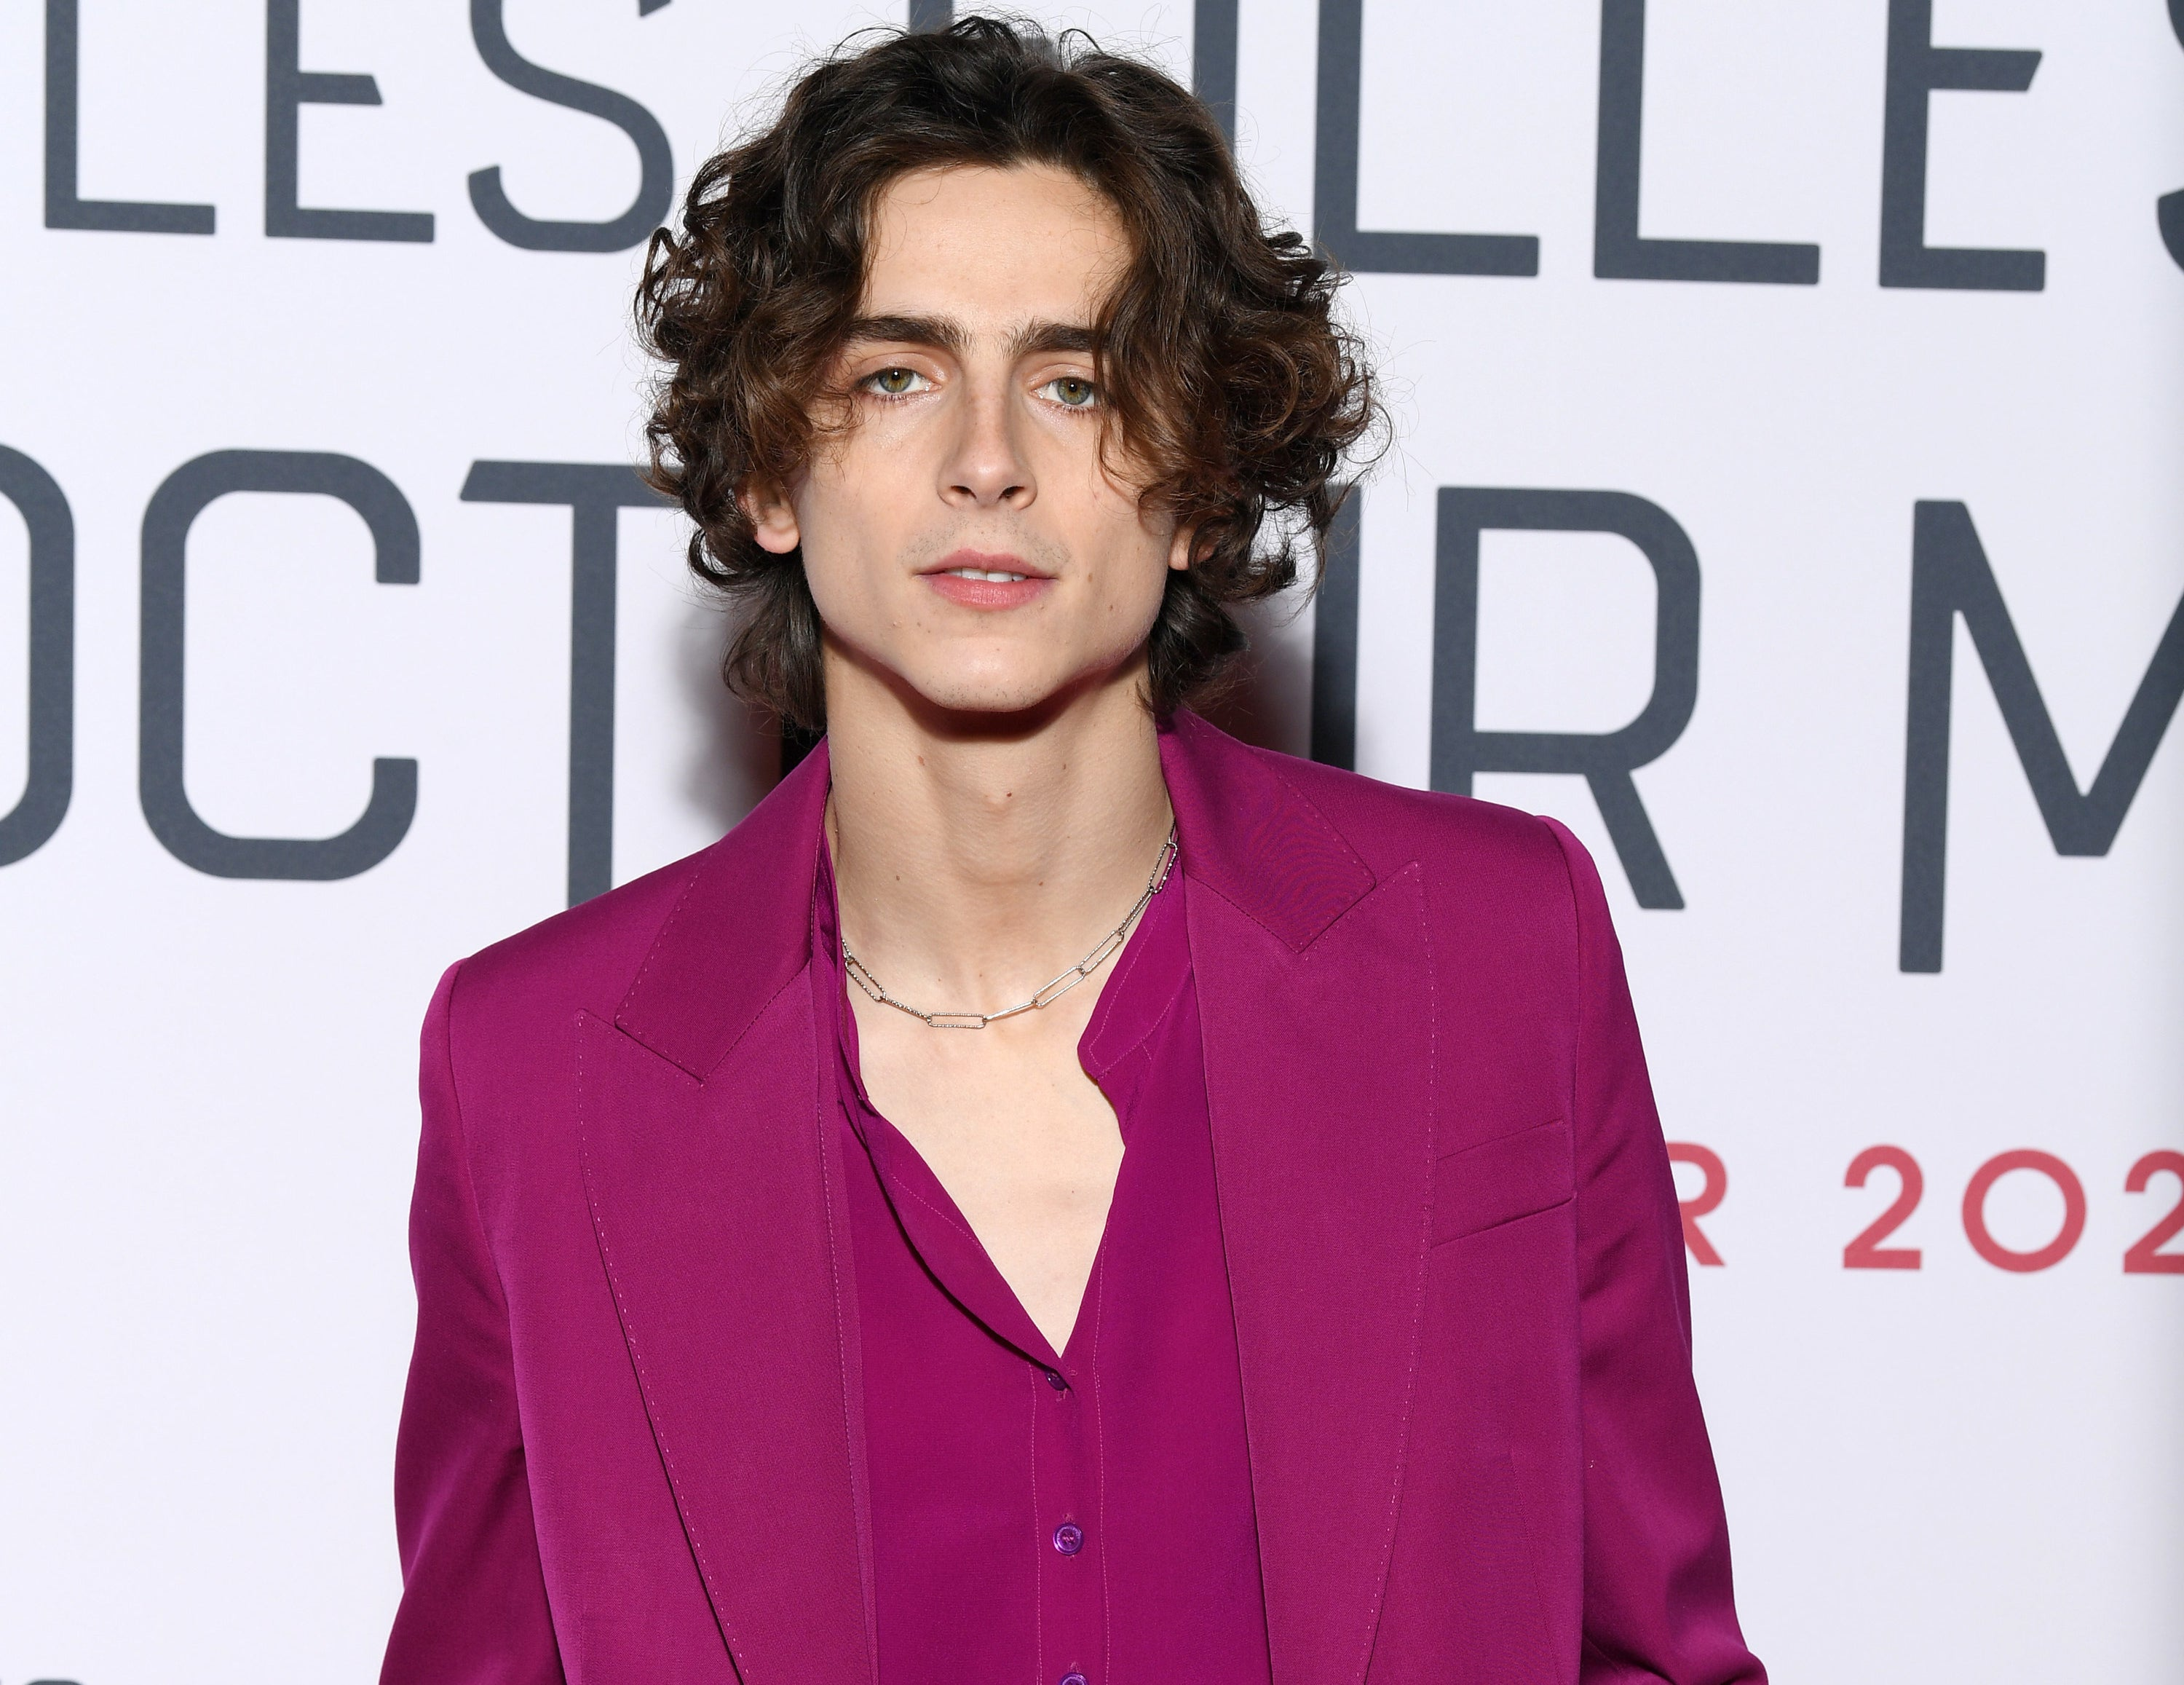 Timothee wears a pink suit while attending an even